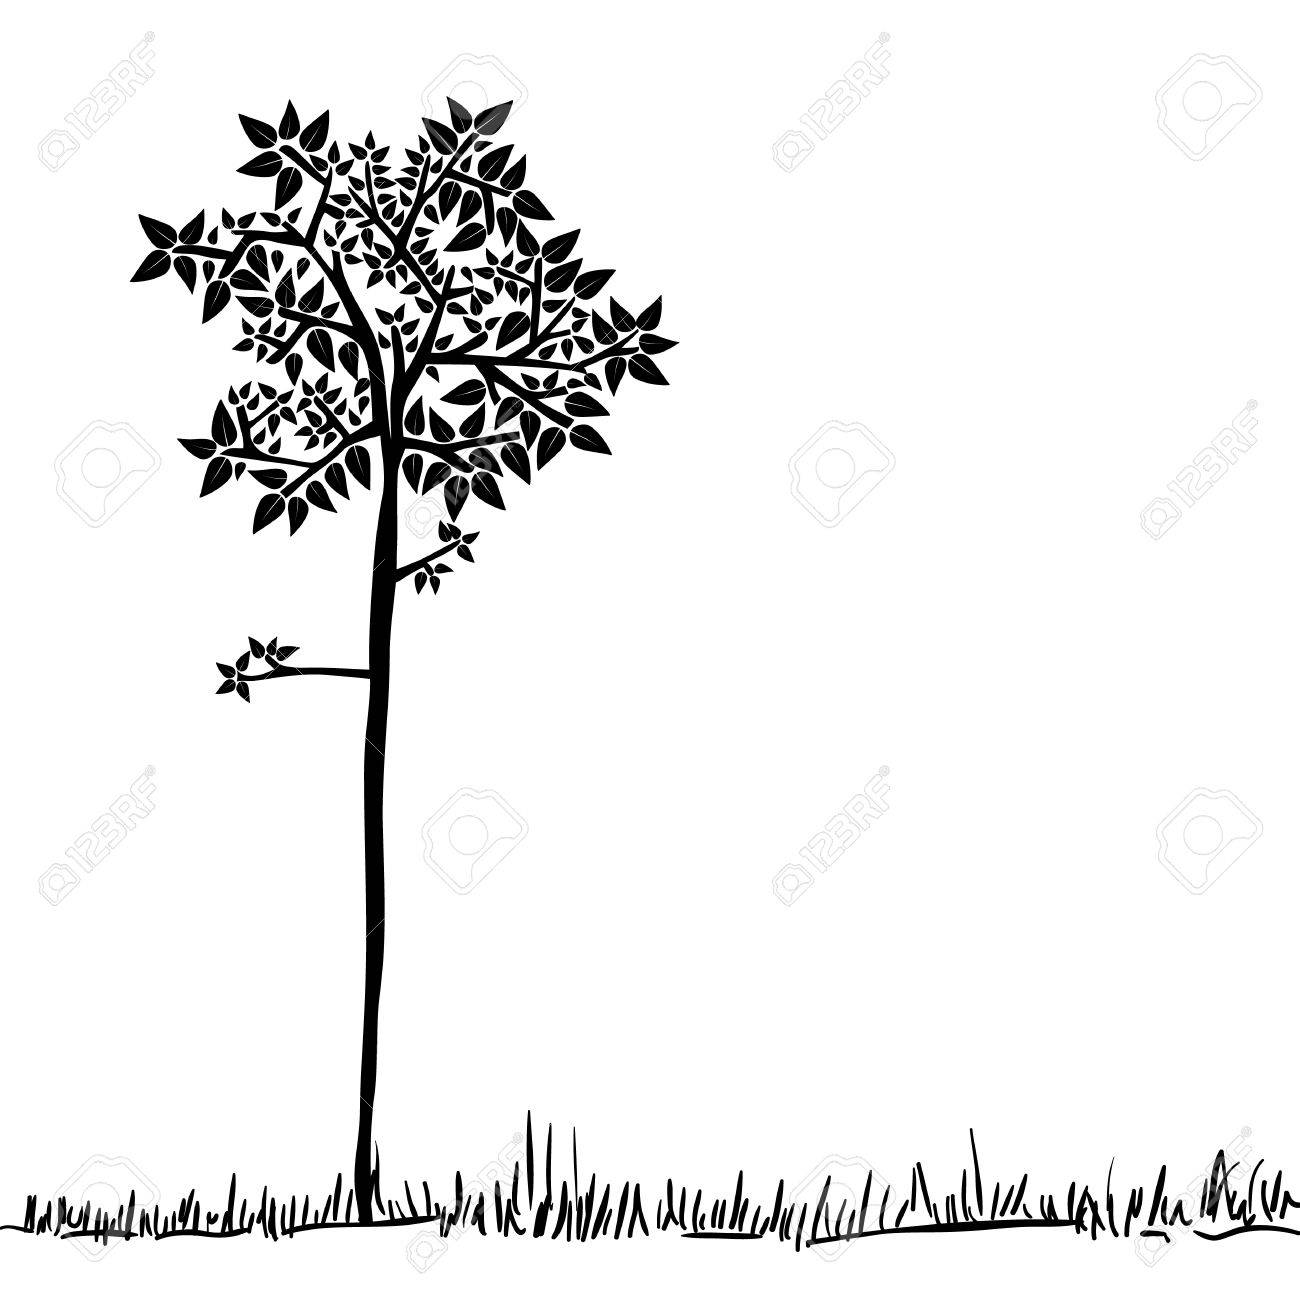 Big tree icon silhouette over isolated background. Vector file layered for easy manipulation and custom coloring. Stock Vector - 20602972